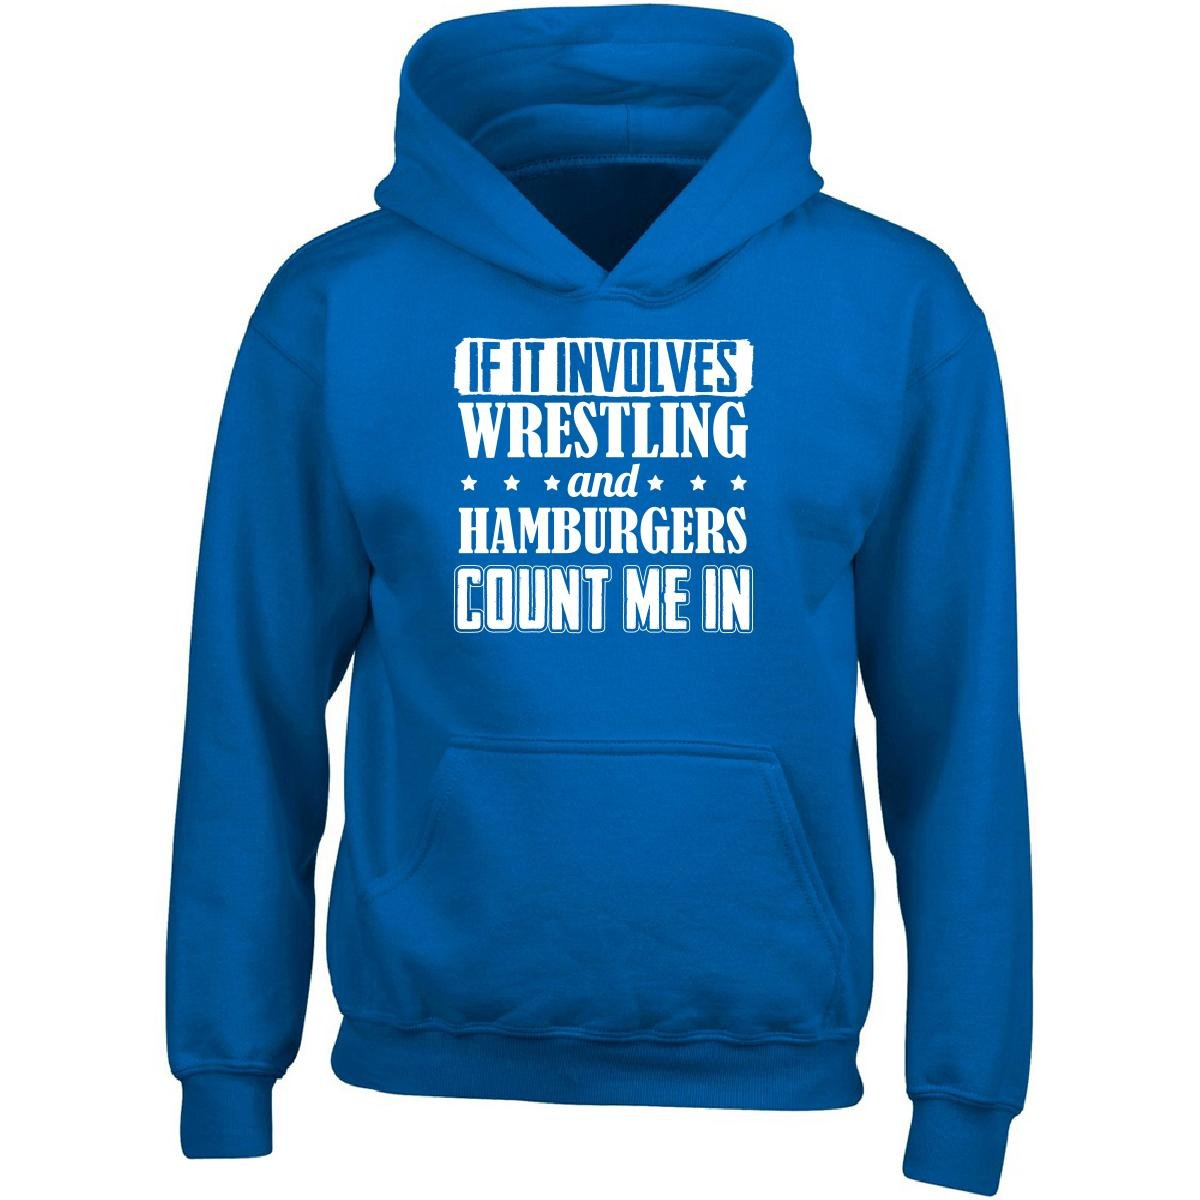 If It Involves Wrestling And Hamburgers Count Me In - Adult Hoodie L Royal